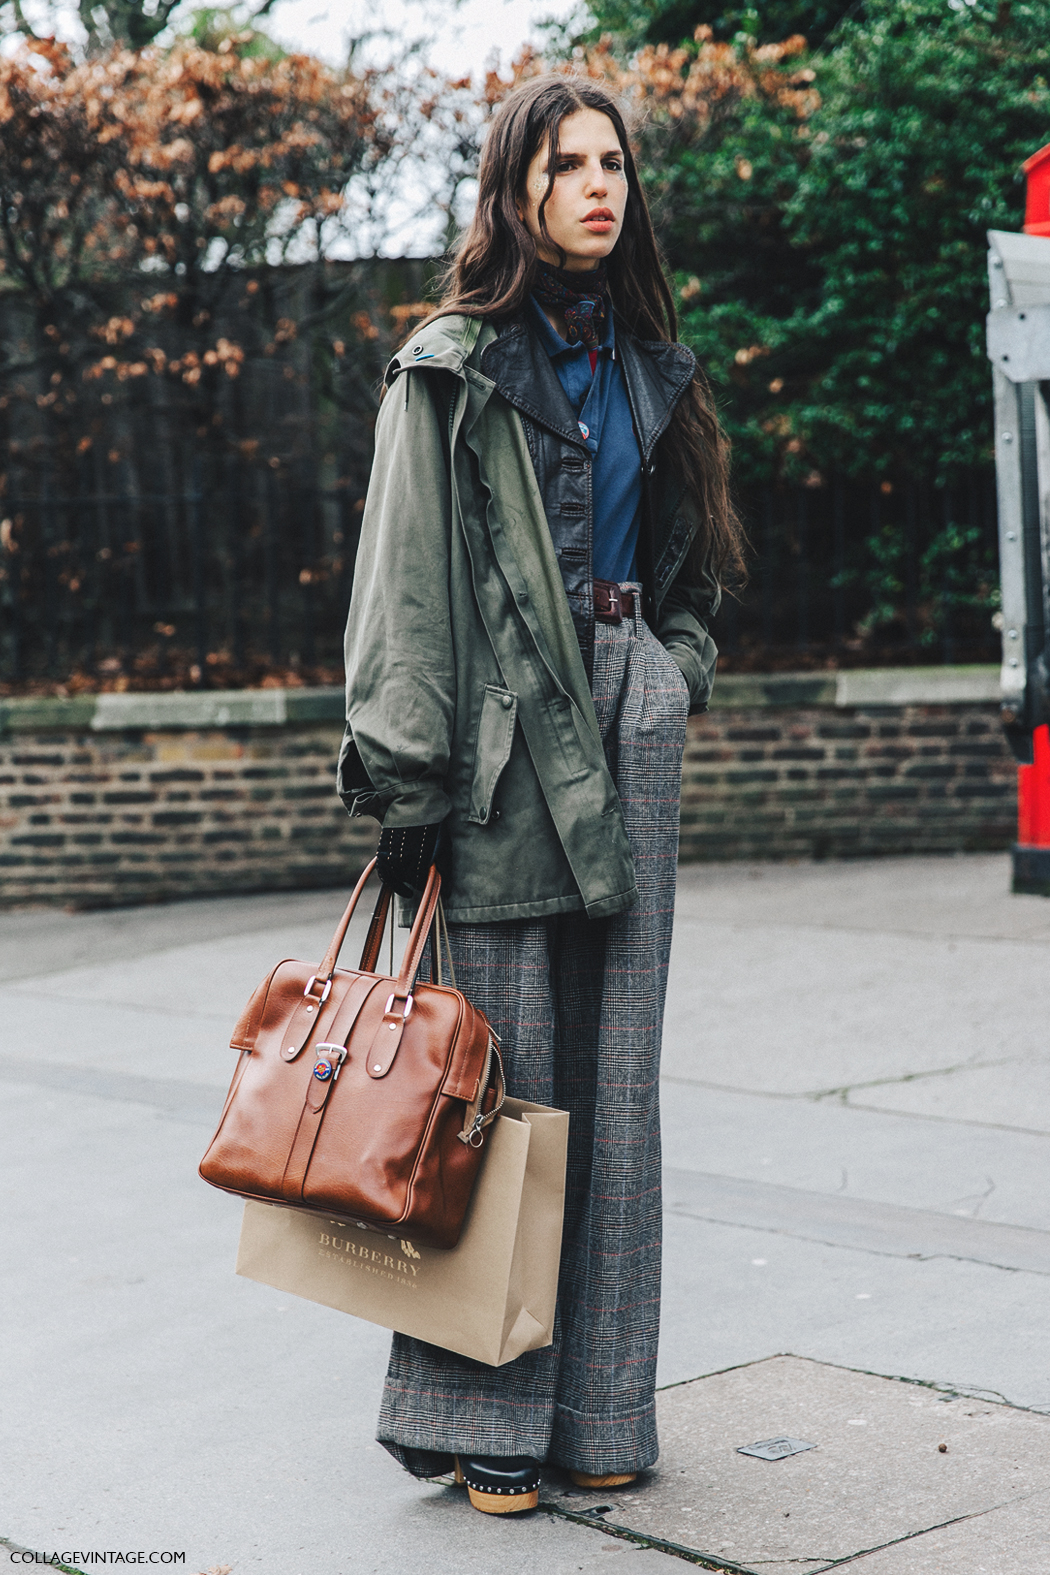 LFW-London_Fashion_Week_Fall_16-Street_Style-Collage_Vintage-Model-Burberry-Tweed_Trousers-Parka-2